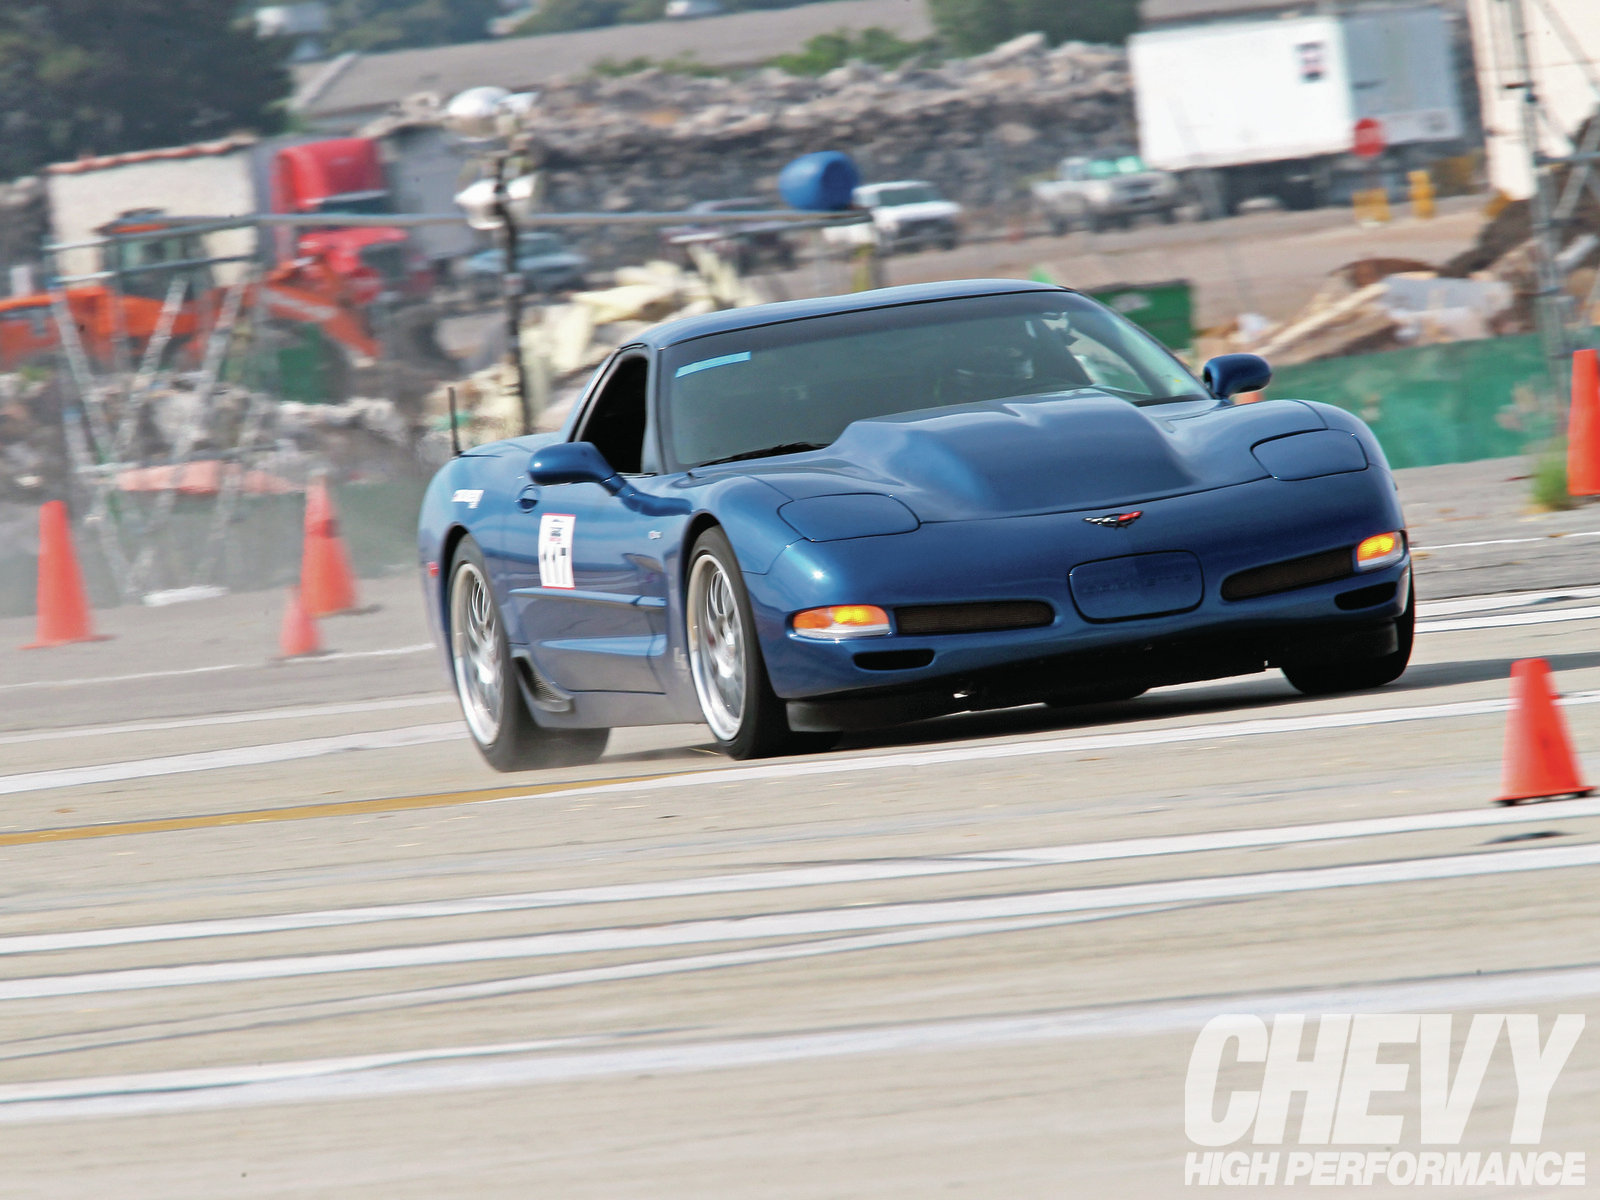 1302chp 02 O  Chevrolet Corvette Z06 Owners